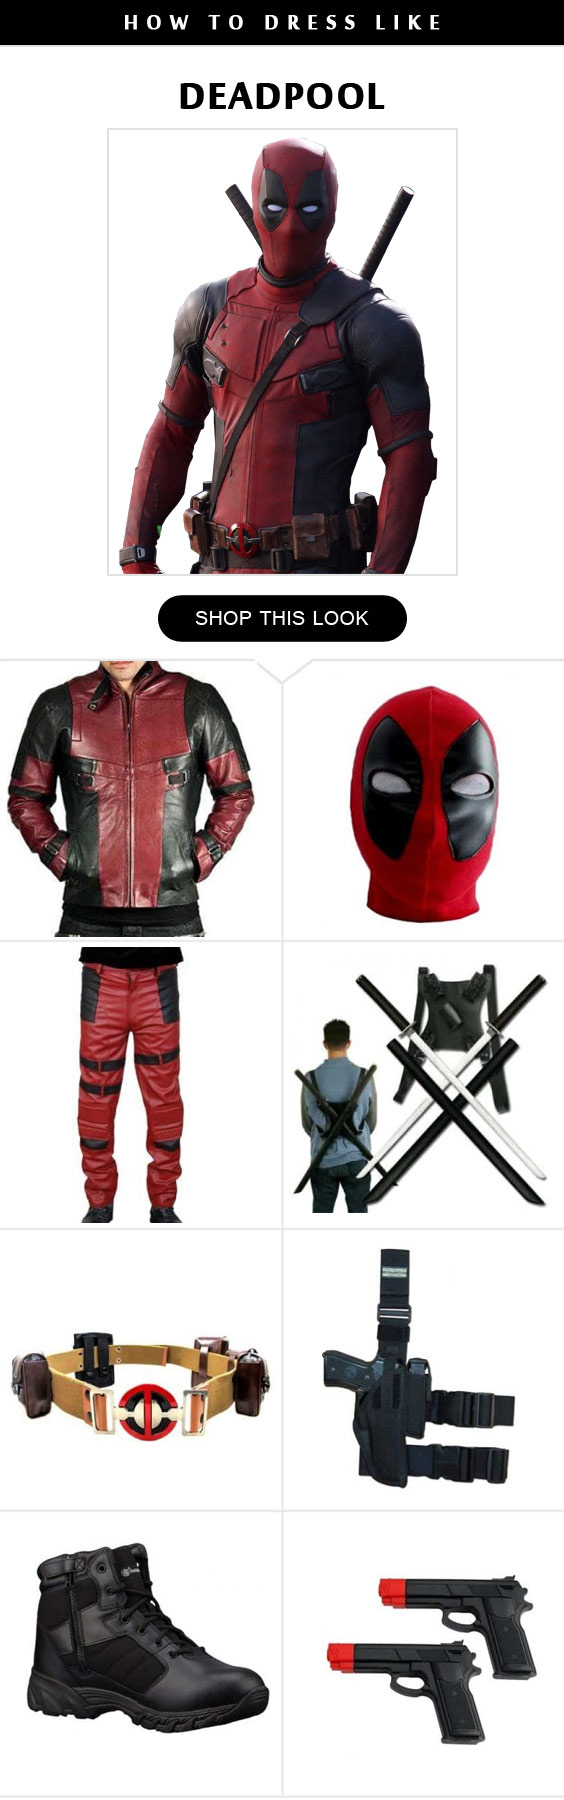 The complete deadpool costume guide for merc with a mouth family deadpool cosplay costume infographic solutioingenieria